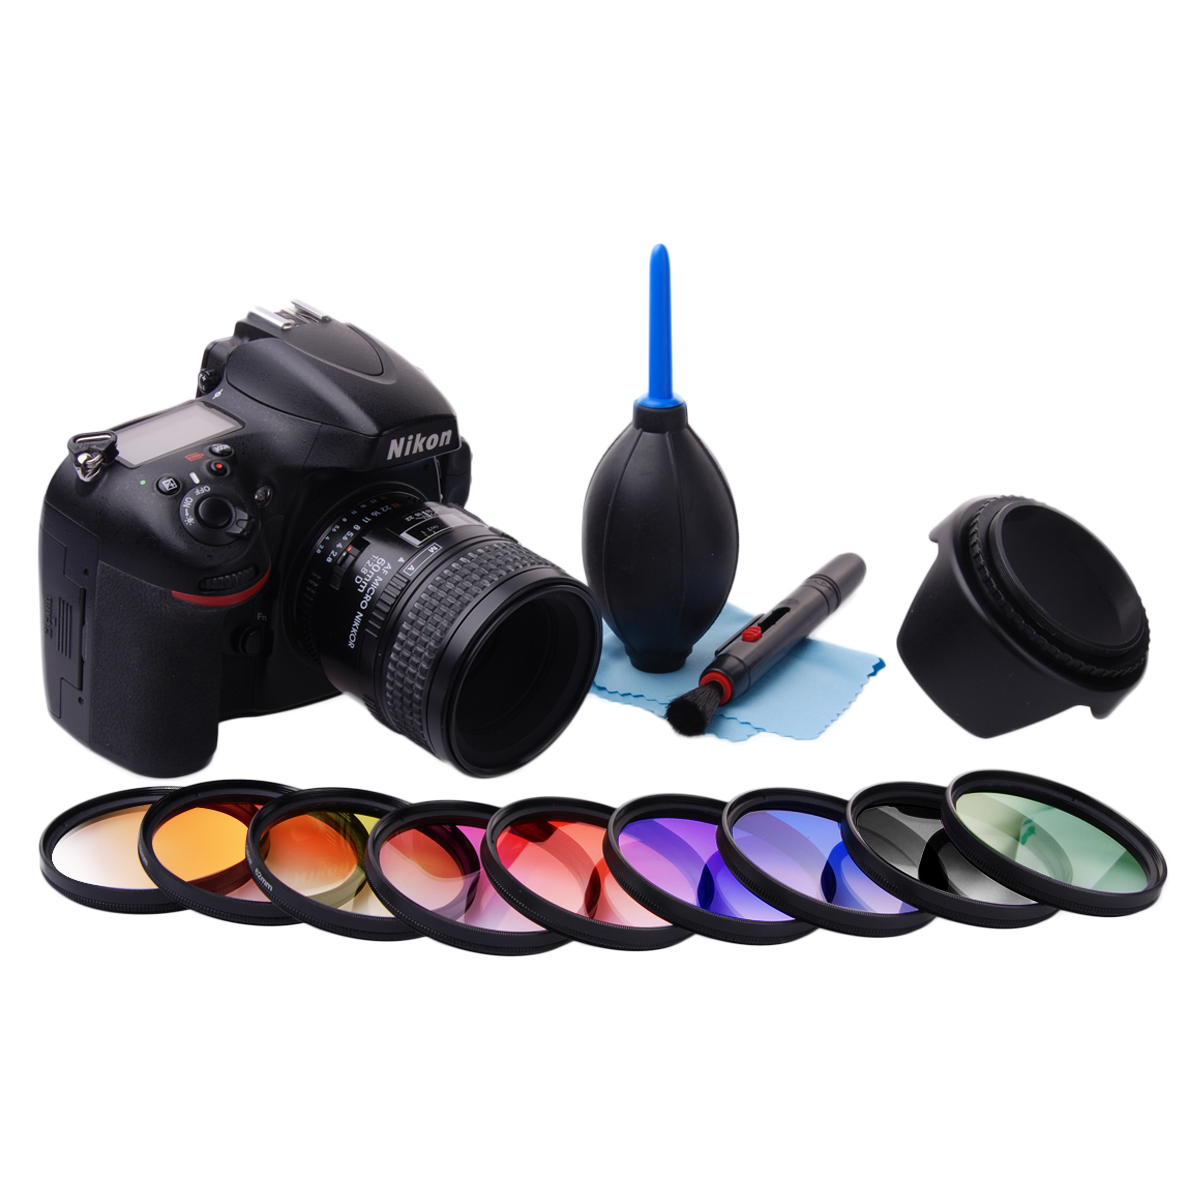 58mm gradu couleur filtre kit pour canon 1100d 700d 650d 600d 550d 100d lf498 ebay. Black Bedroom Furniture Sets. Home Design Ideas